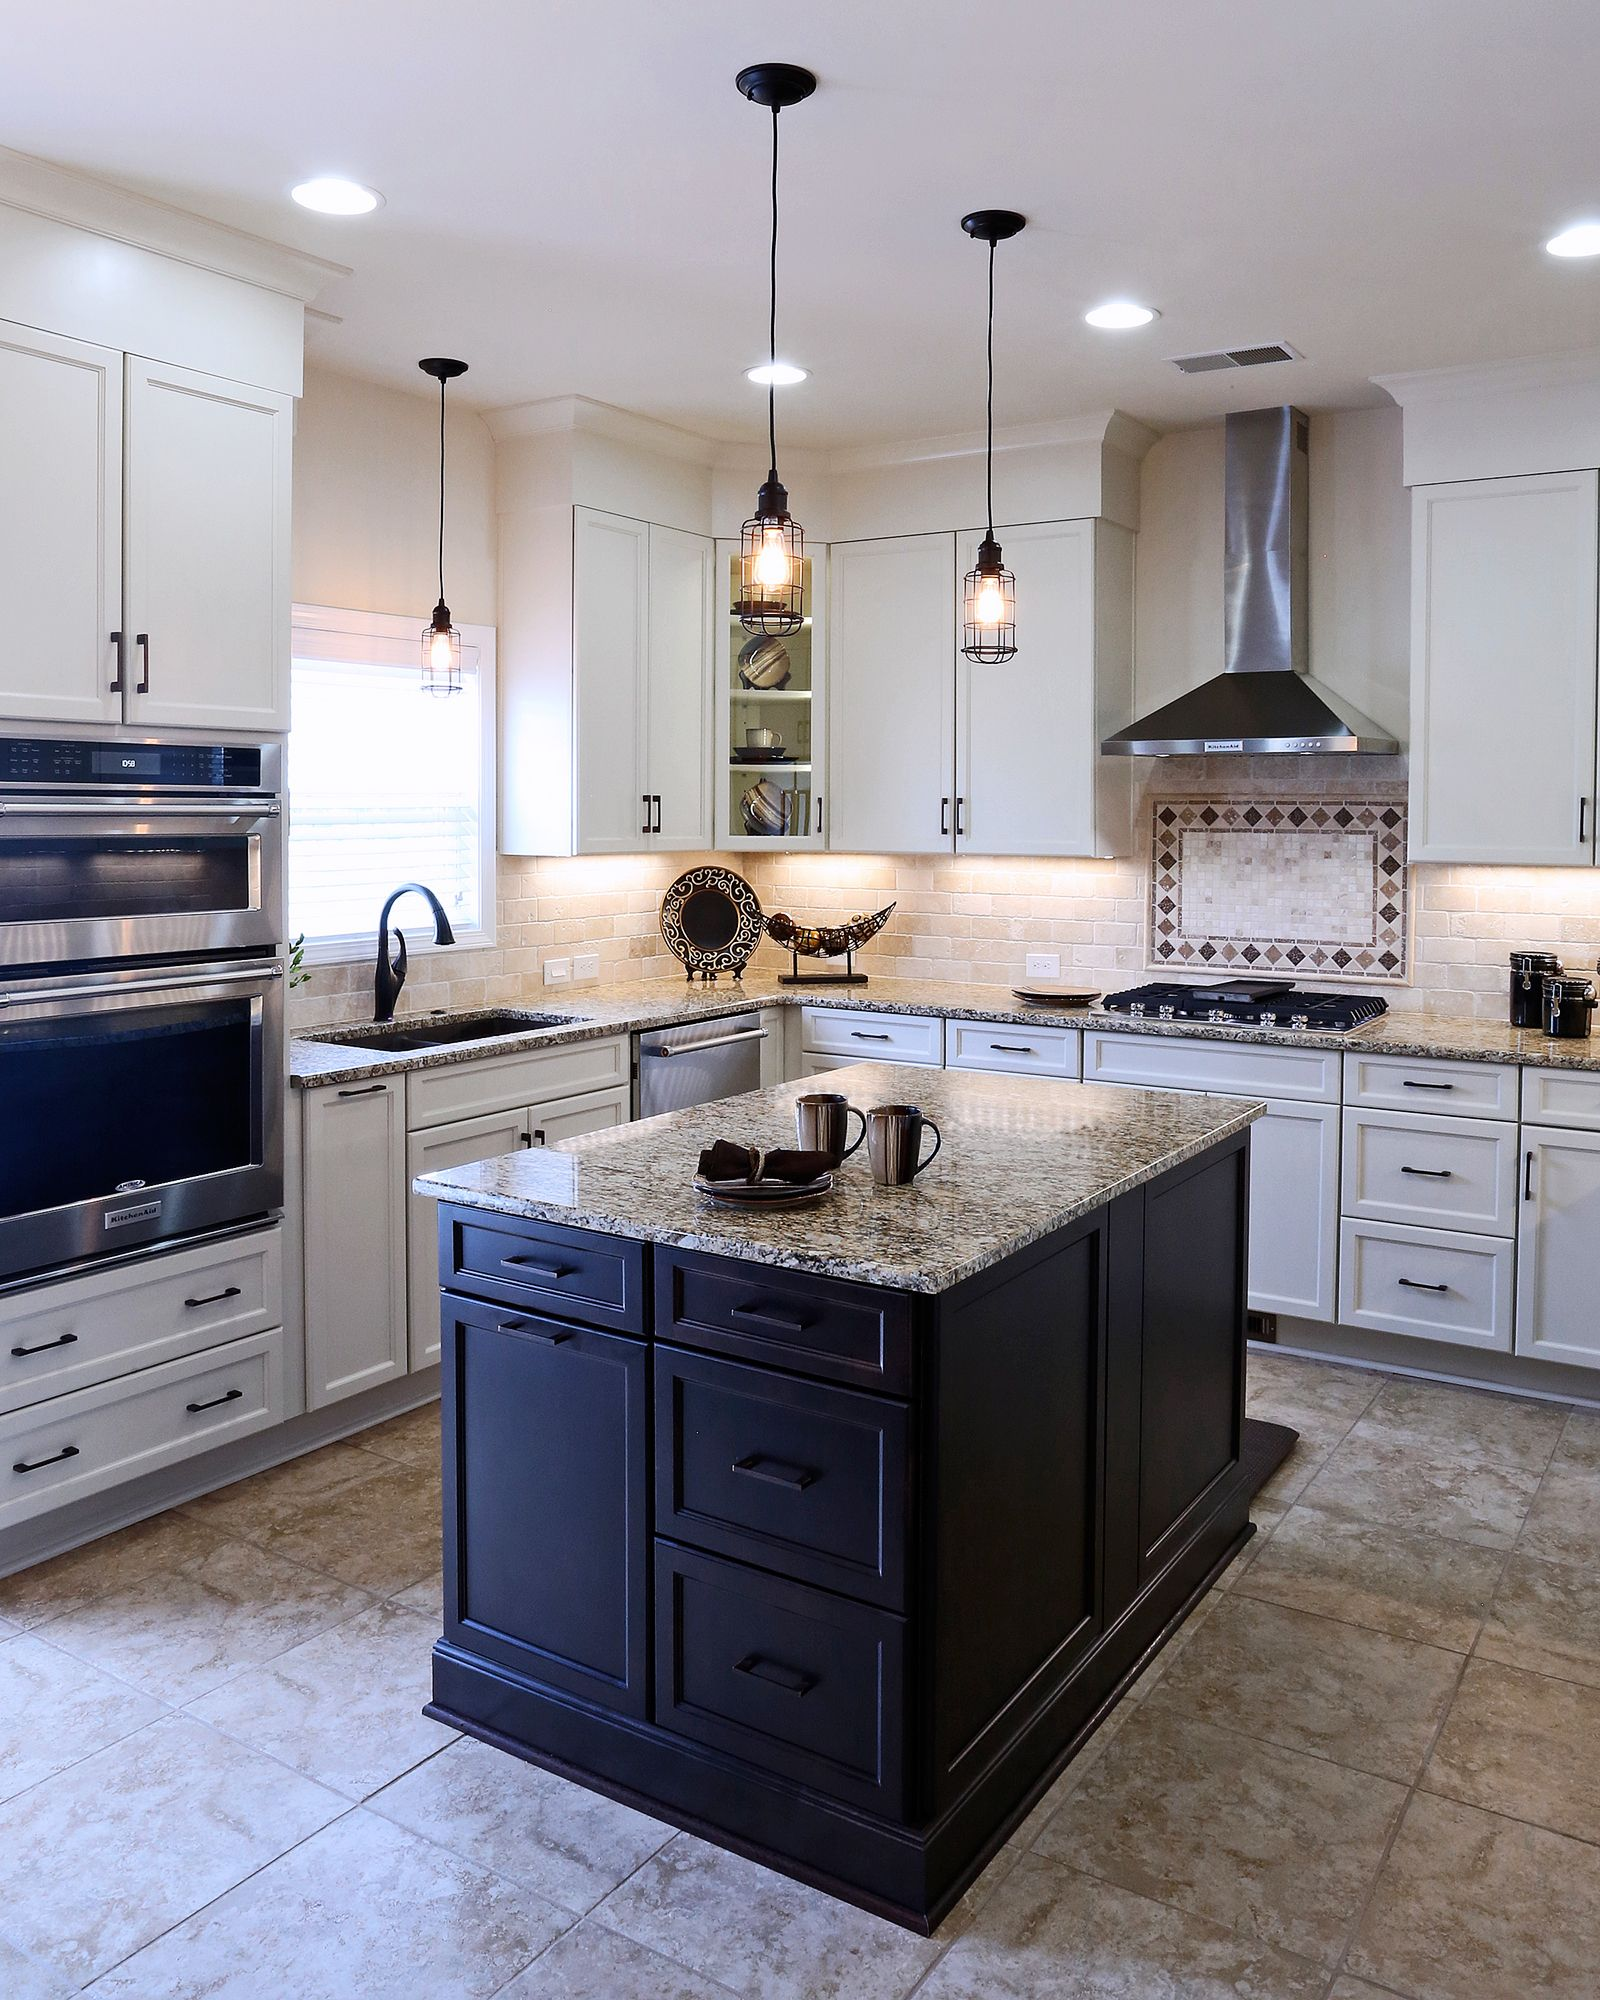 A Great Kitchen You And Your Visitors Would Love To Dine In Check Out This Crite Kitchen Pro Kitchen Remodeling Services Online Kitchen Cabinets Condo Kitchen